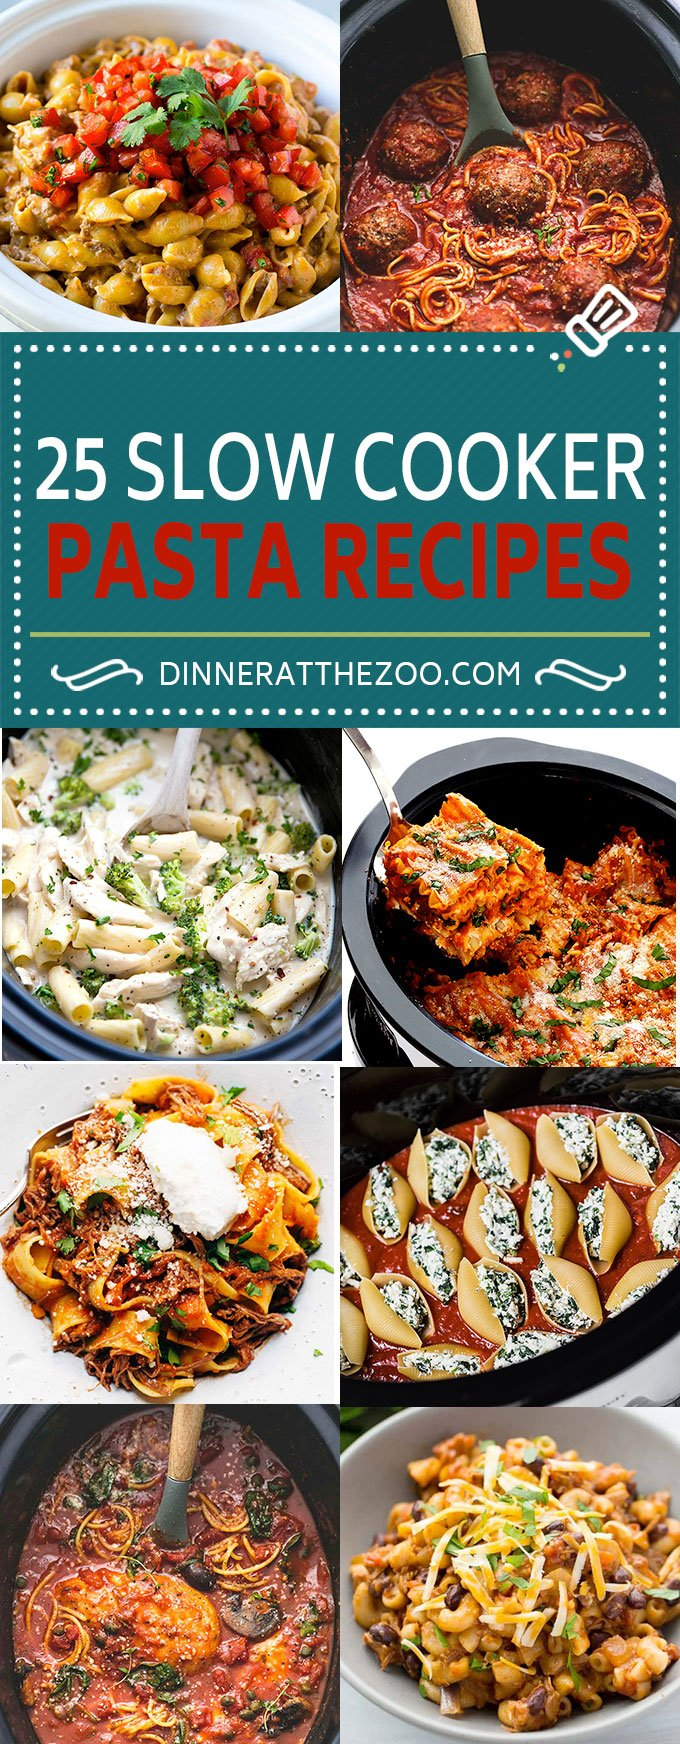 25 Slow Cooker Pasta Recipes